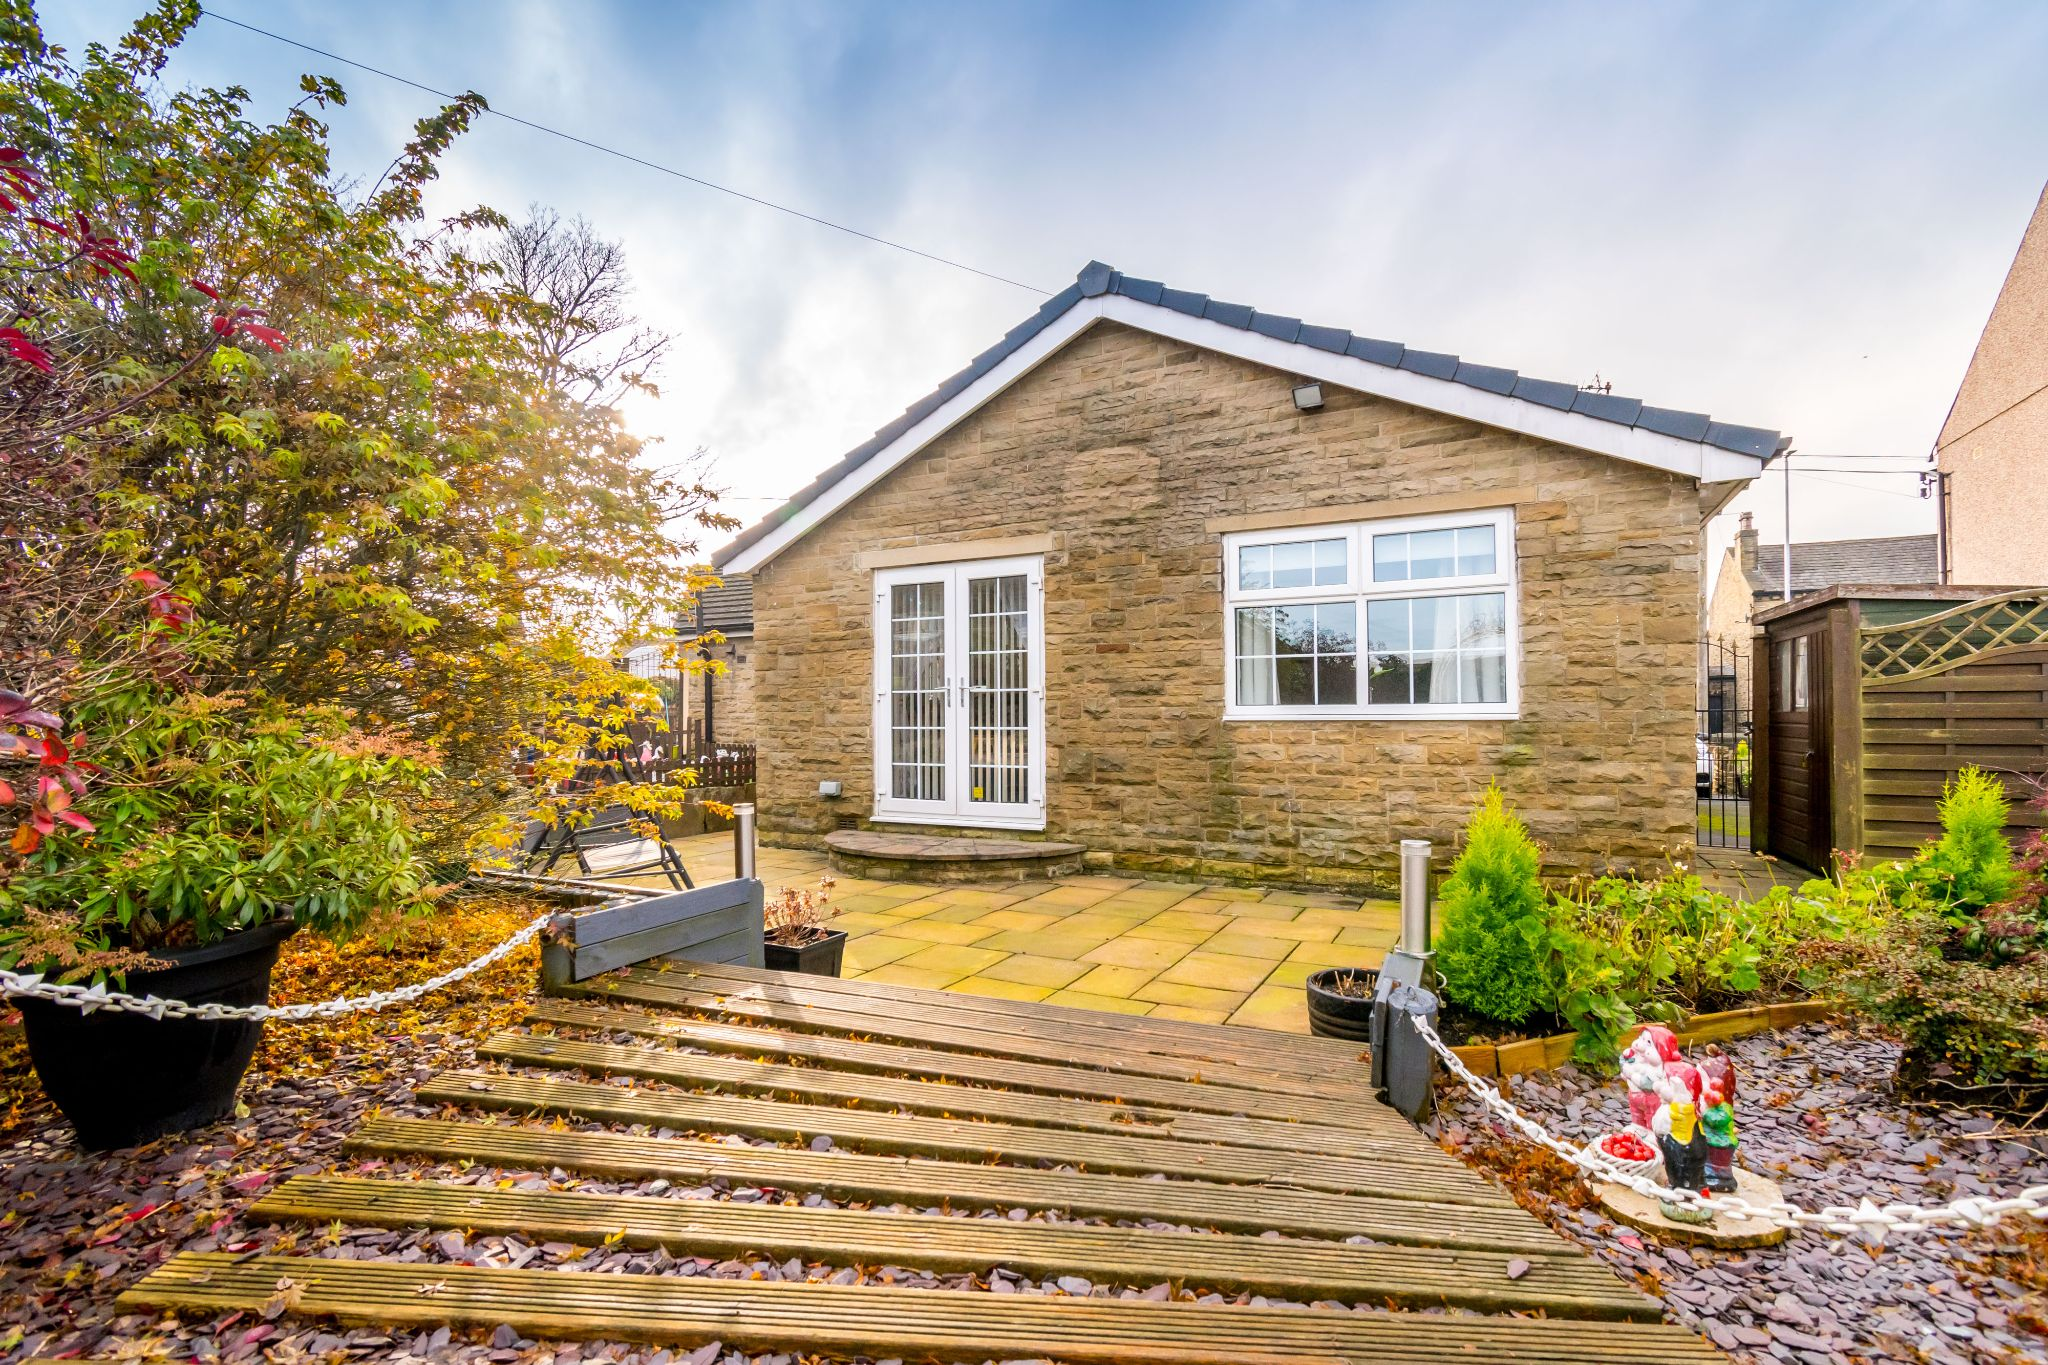 3 bedroom detached bungalow For Sale in Hove Edge - View from the decking